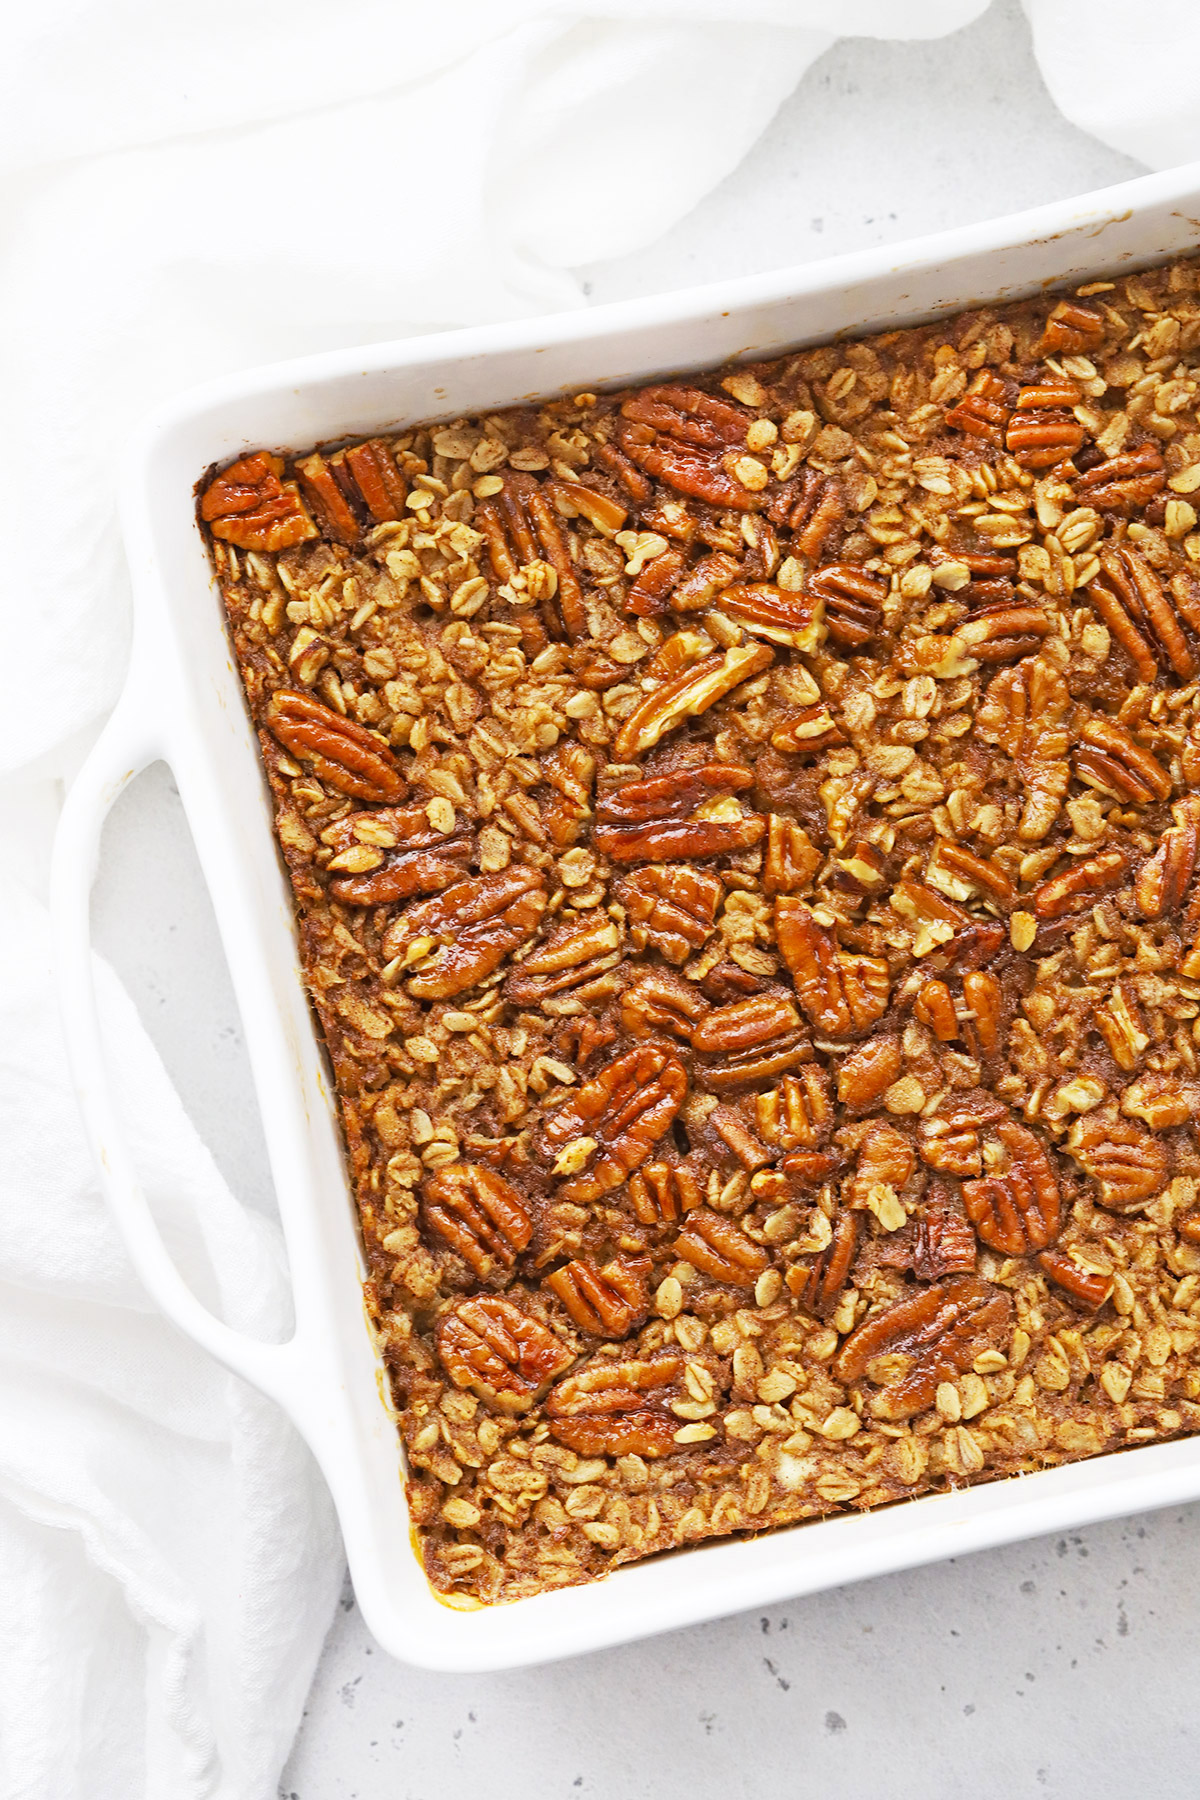 Overhead view of a square pan of gluten free + vegan pecan pie baked oatmeal